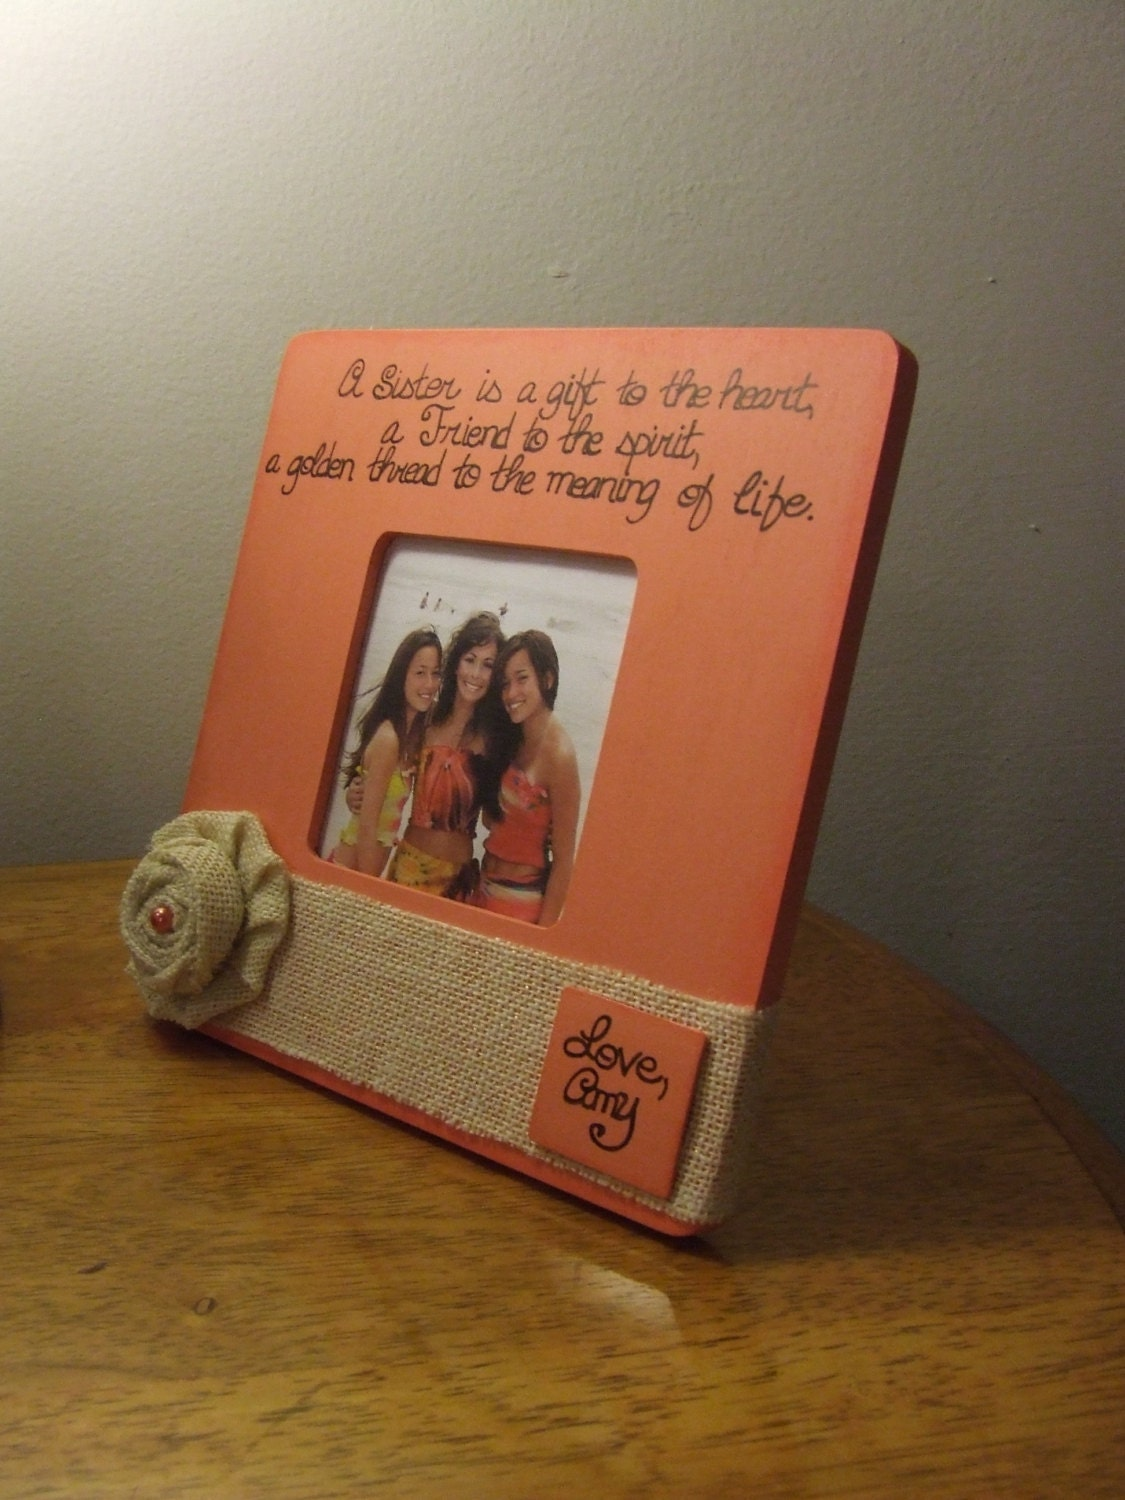 quote frame sisters frame best friend frame gift for sister a sister is a gift to the heart big sister frame big sister gi